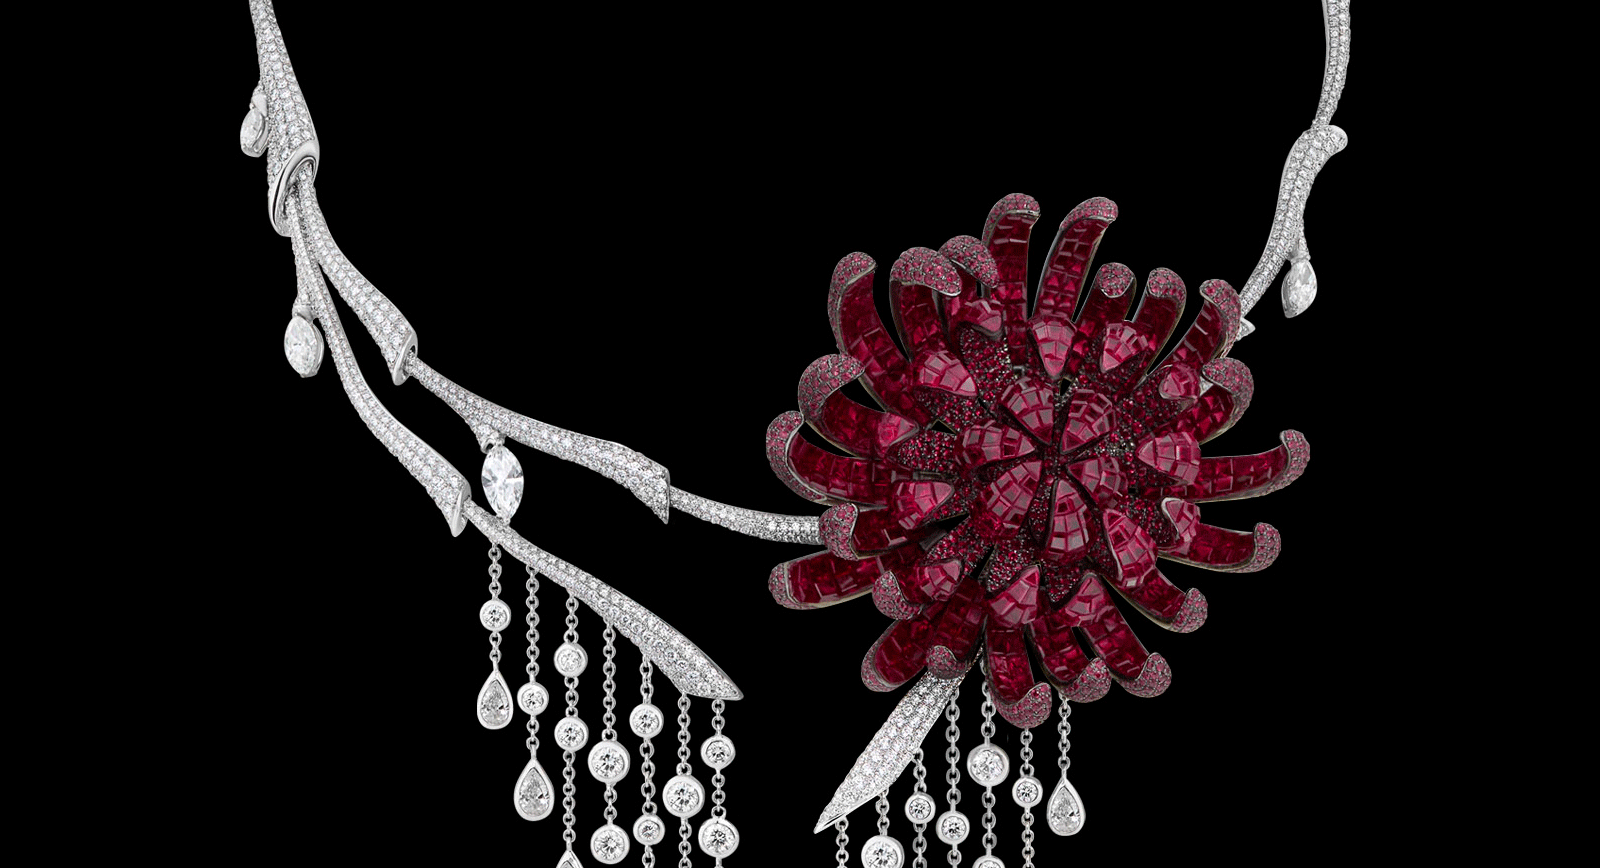 Stenzhorn Presented A Symbolic Collection of High Jewellery The Noble Ones